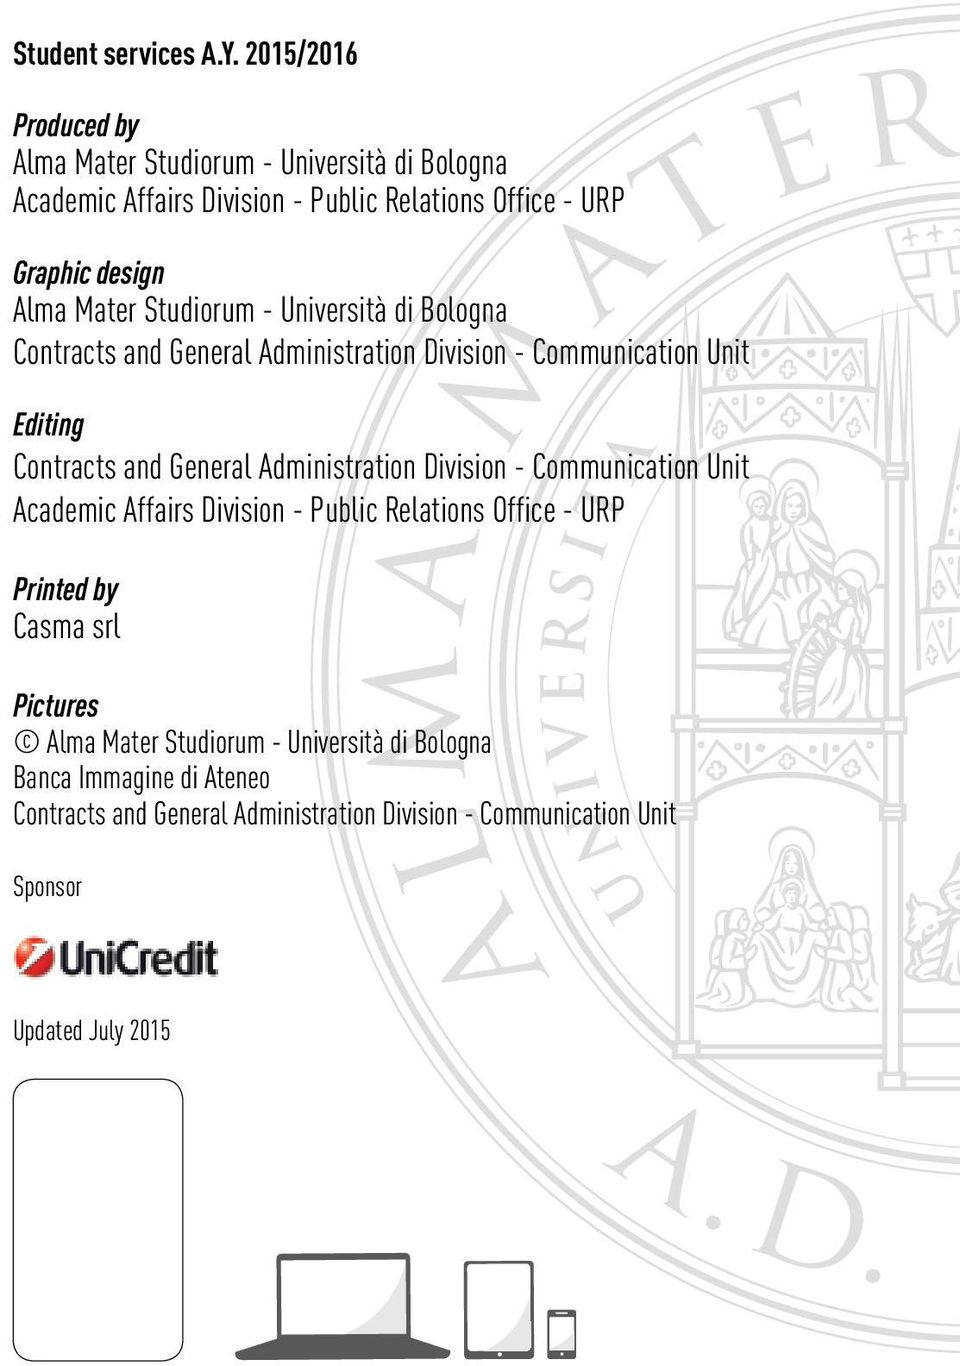 Studiorum - Università di Bologna Contracts and General Administration Division - Communication Unit Editing Contracts and General Administration